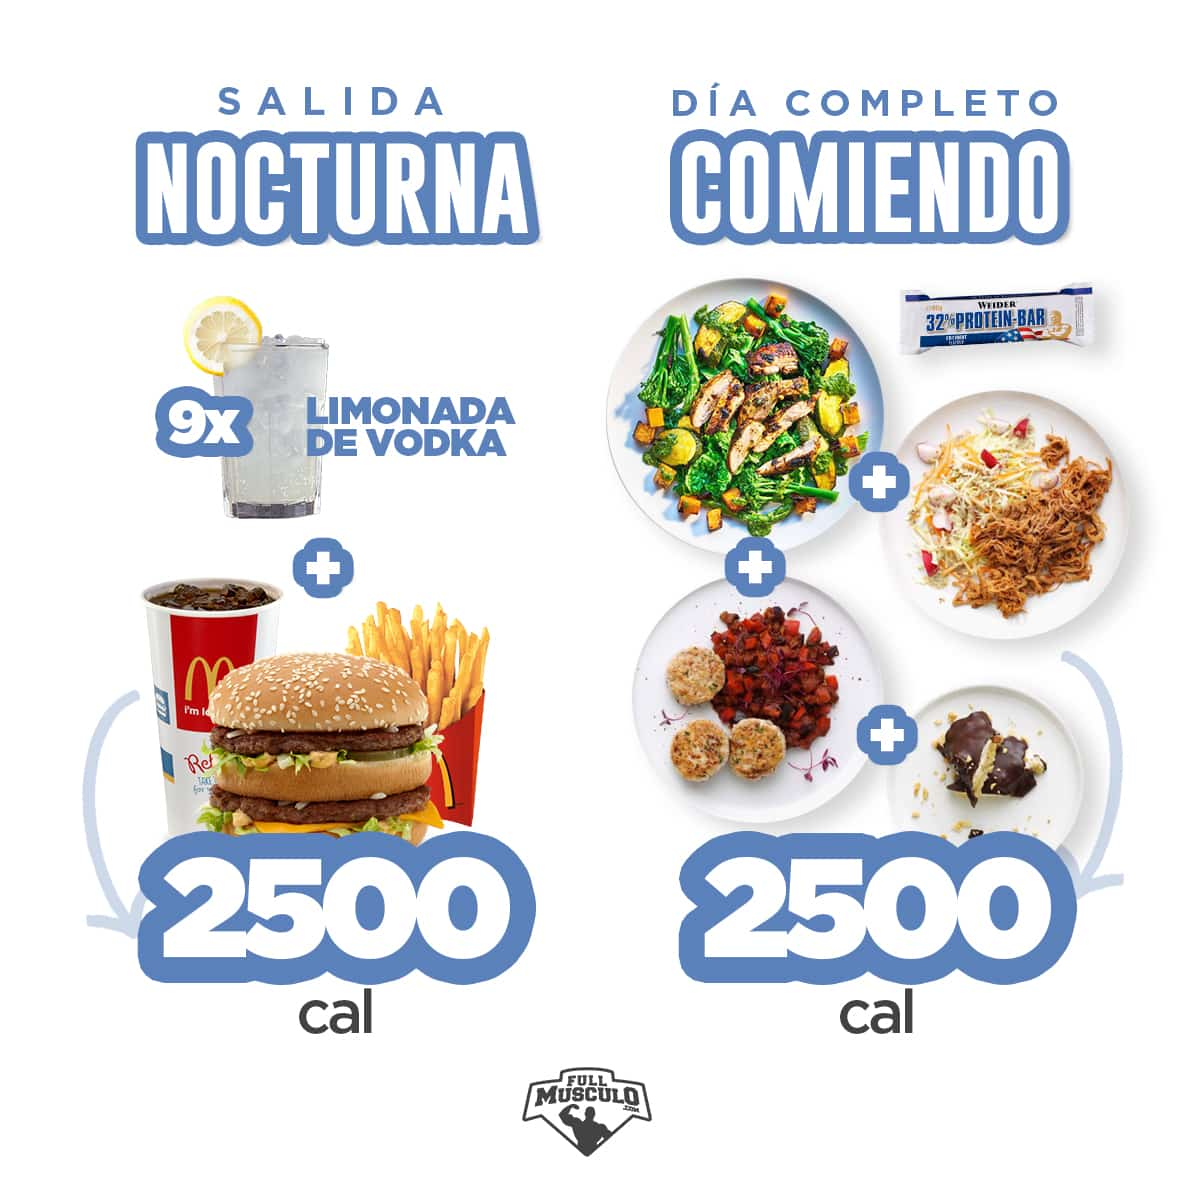 Salida nocturna vs dia saludable